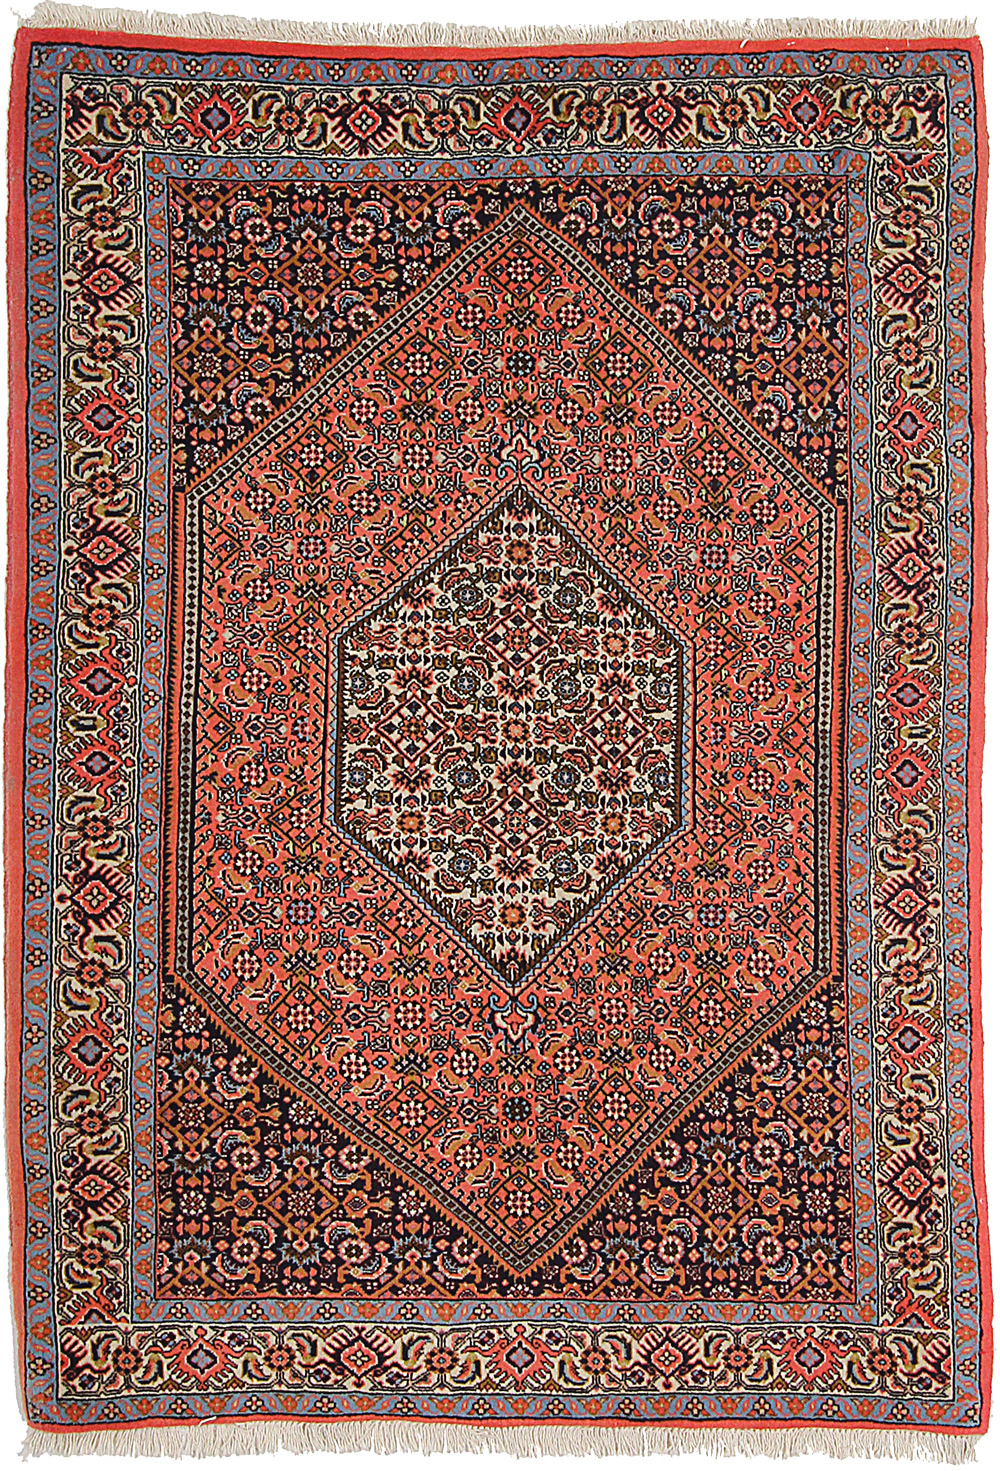 Buy Bidjar Rugs New Jersey Bidjar Persian Rugs For Sale